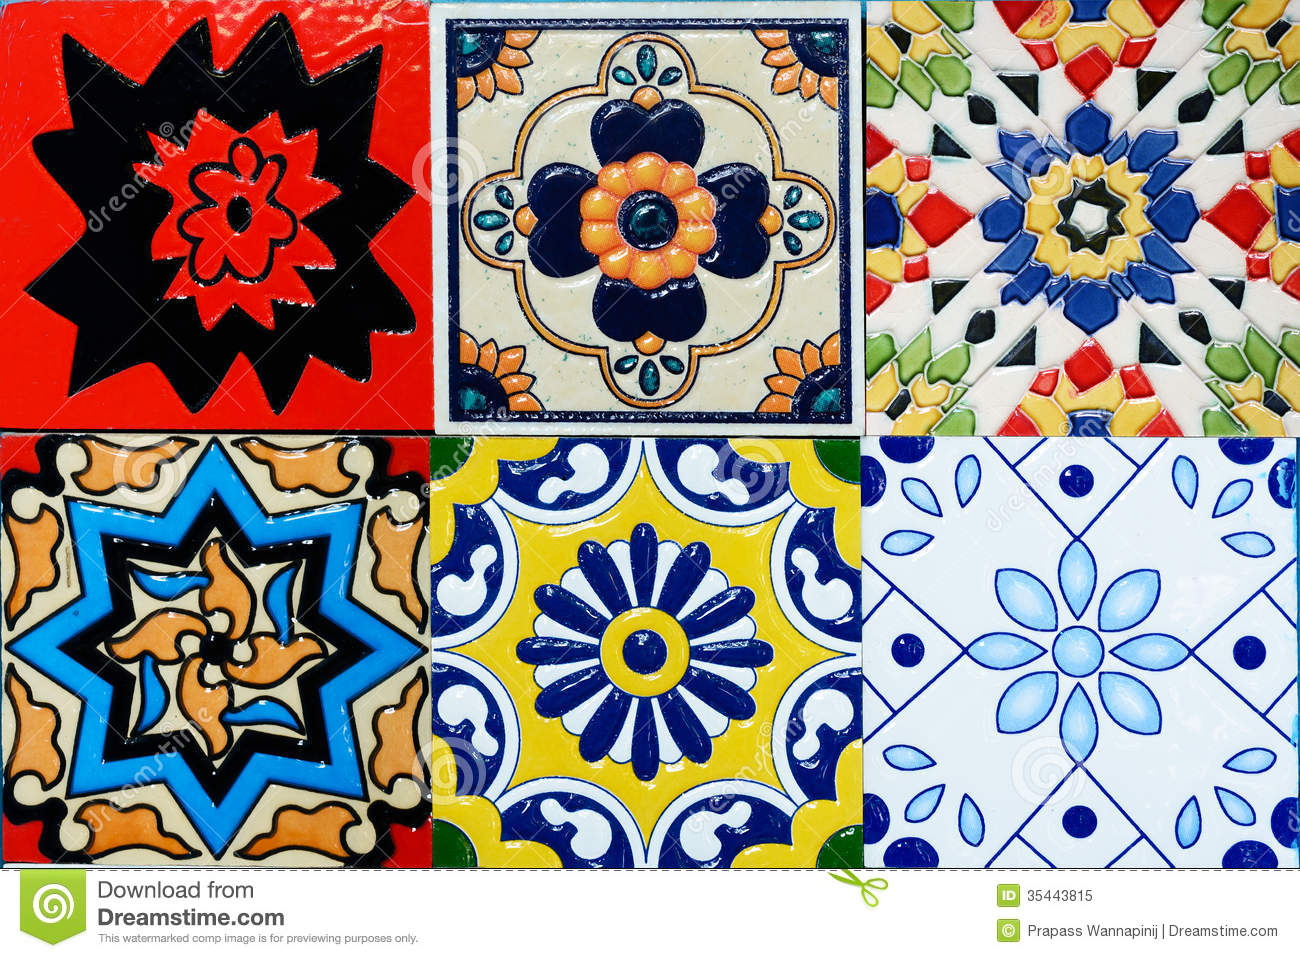 Spanich moroccan style vintage ceramic tile stock image image of spanich moroccan style vintage ceramic tile element decorative dailygadgetfo Image collections